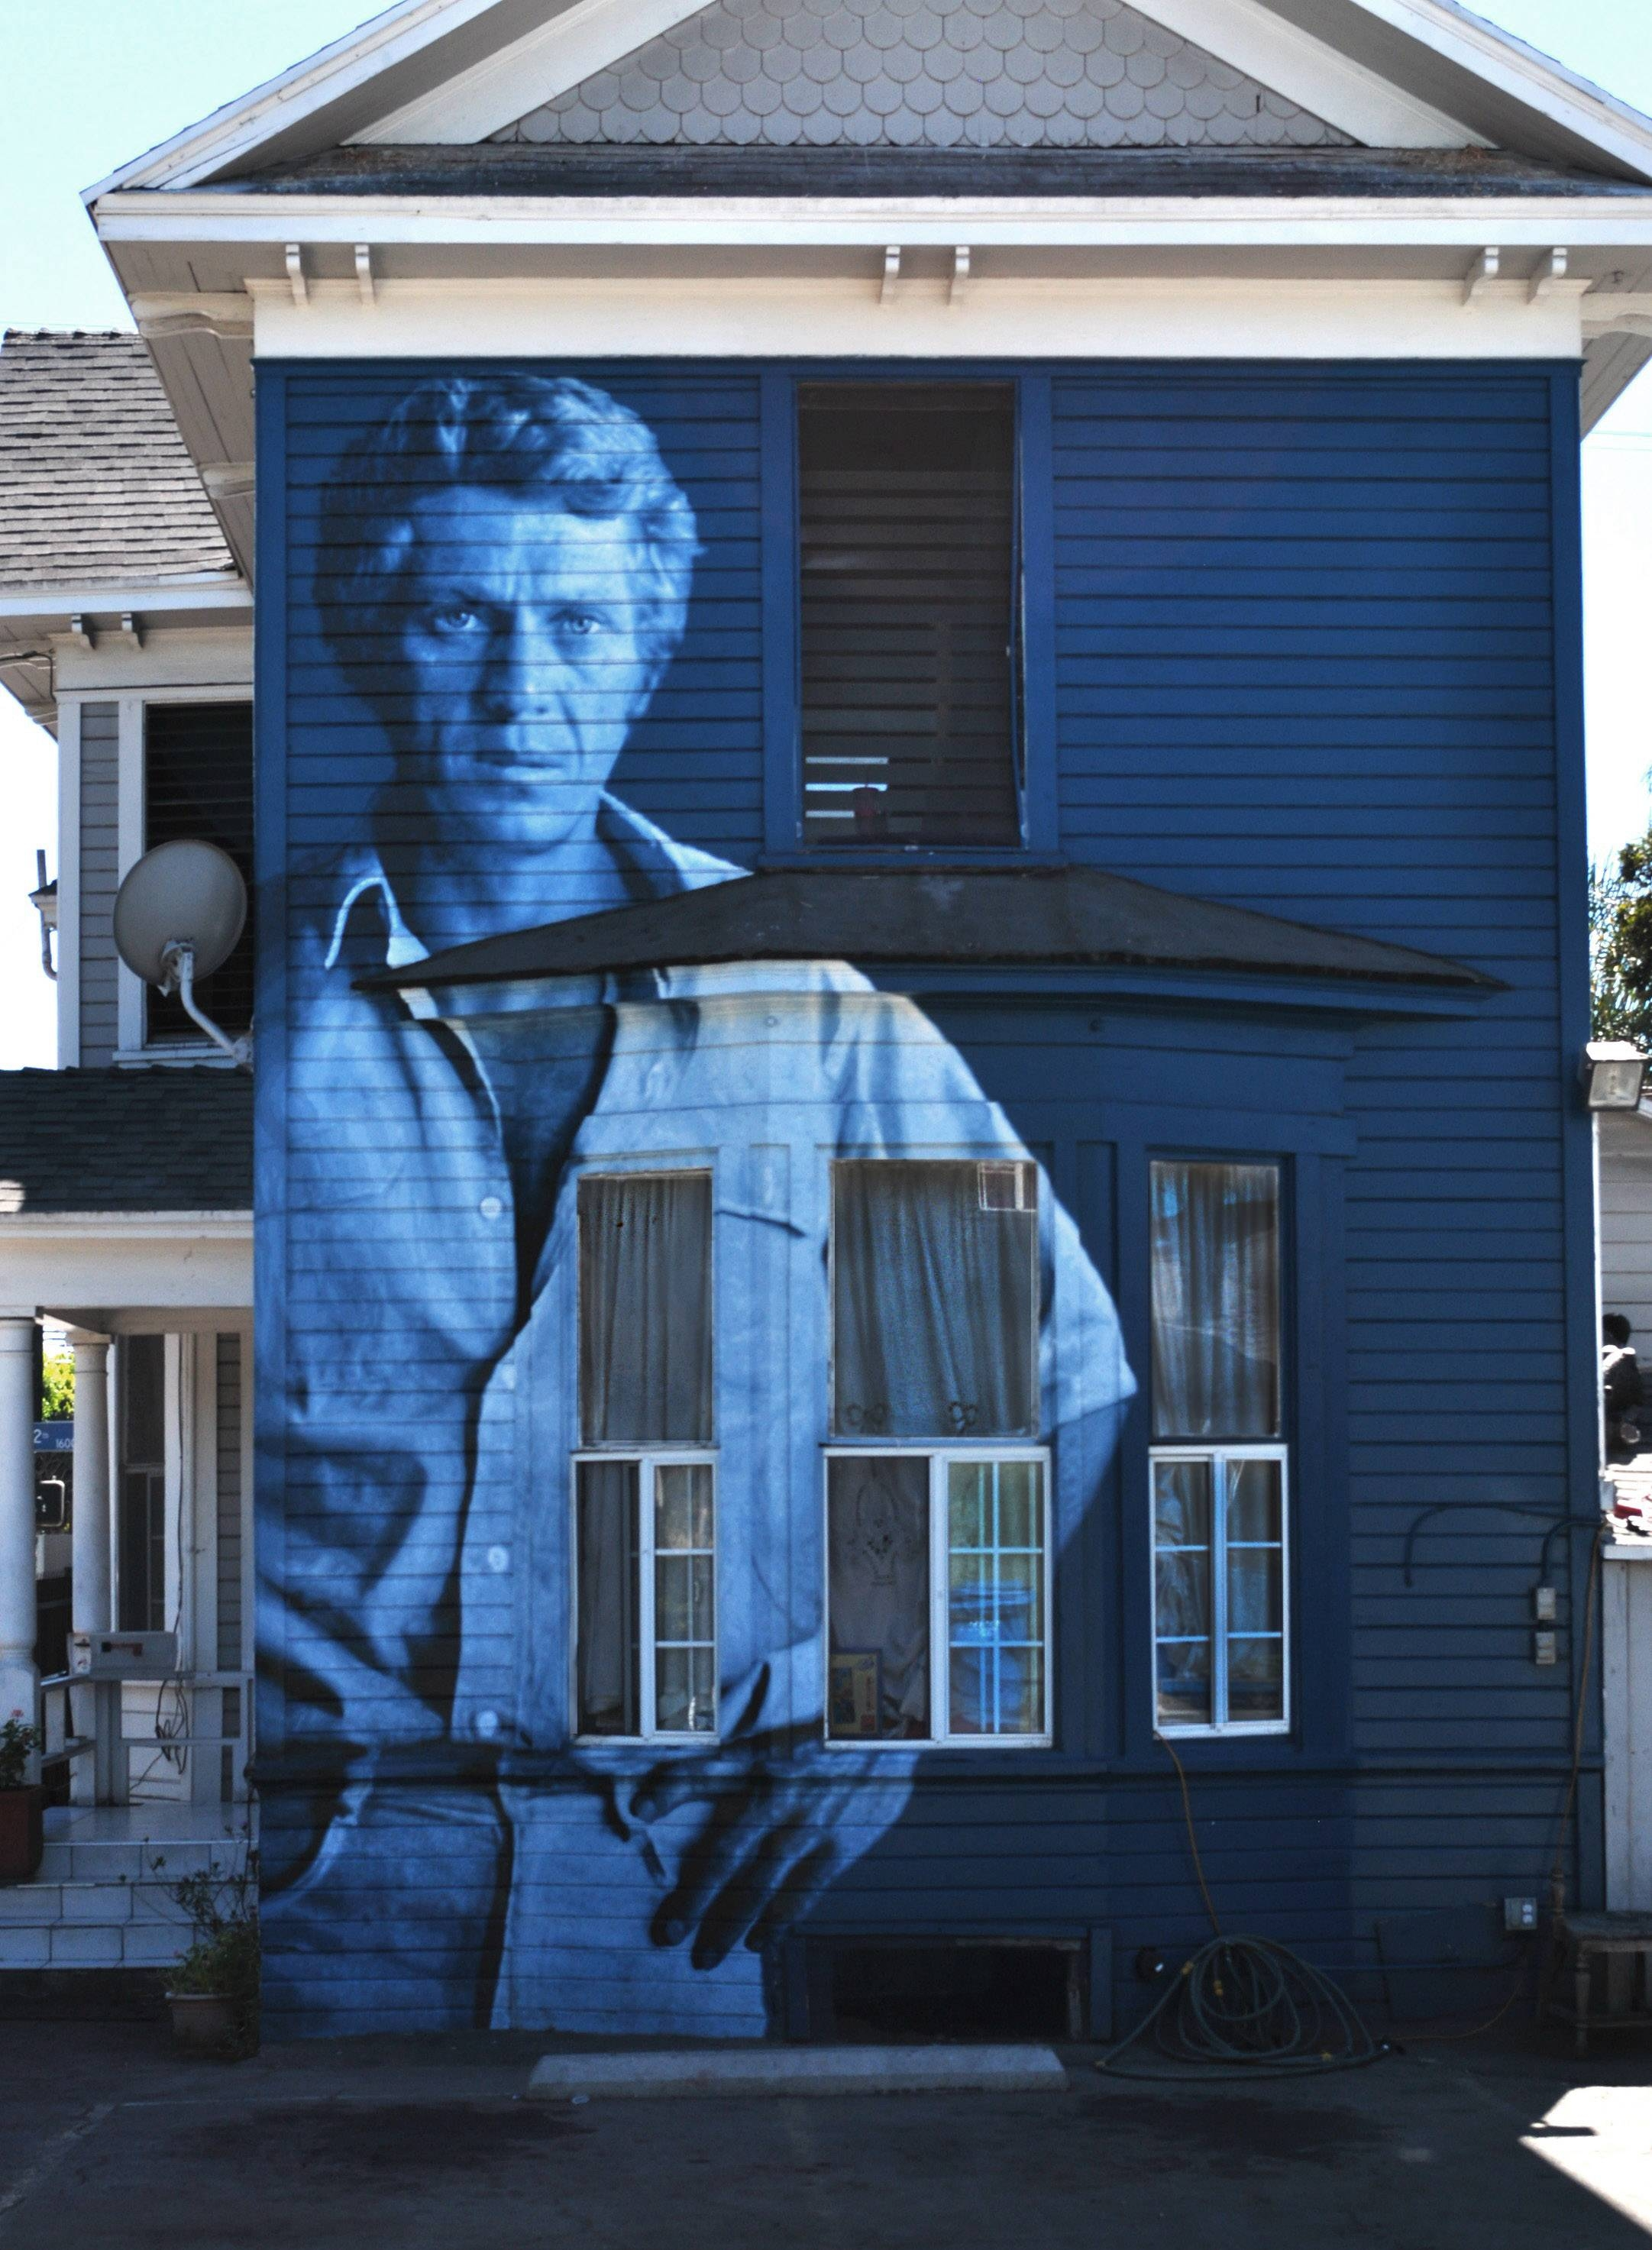 Kent Twitchell | The Other Art Talk | Intended For Best And Newest Steve Mcqueen Wall Art (Gallery 7 of 20)